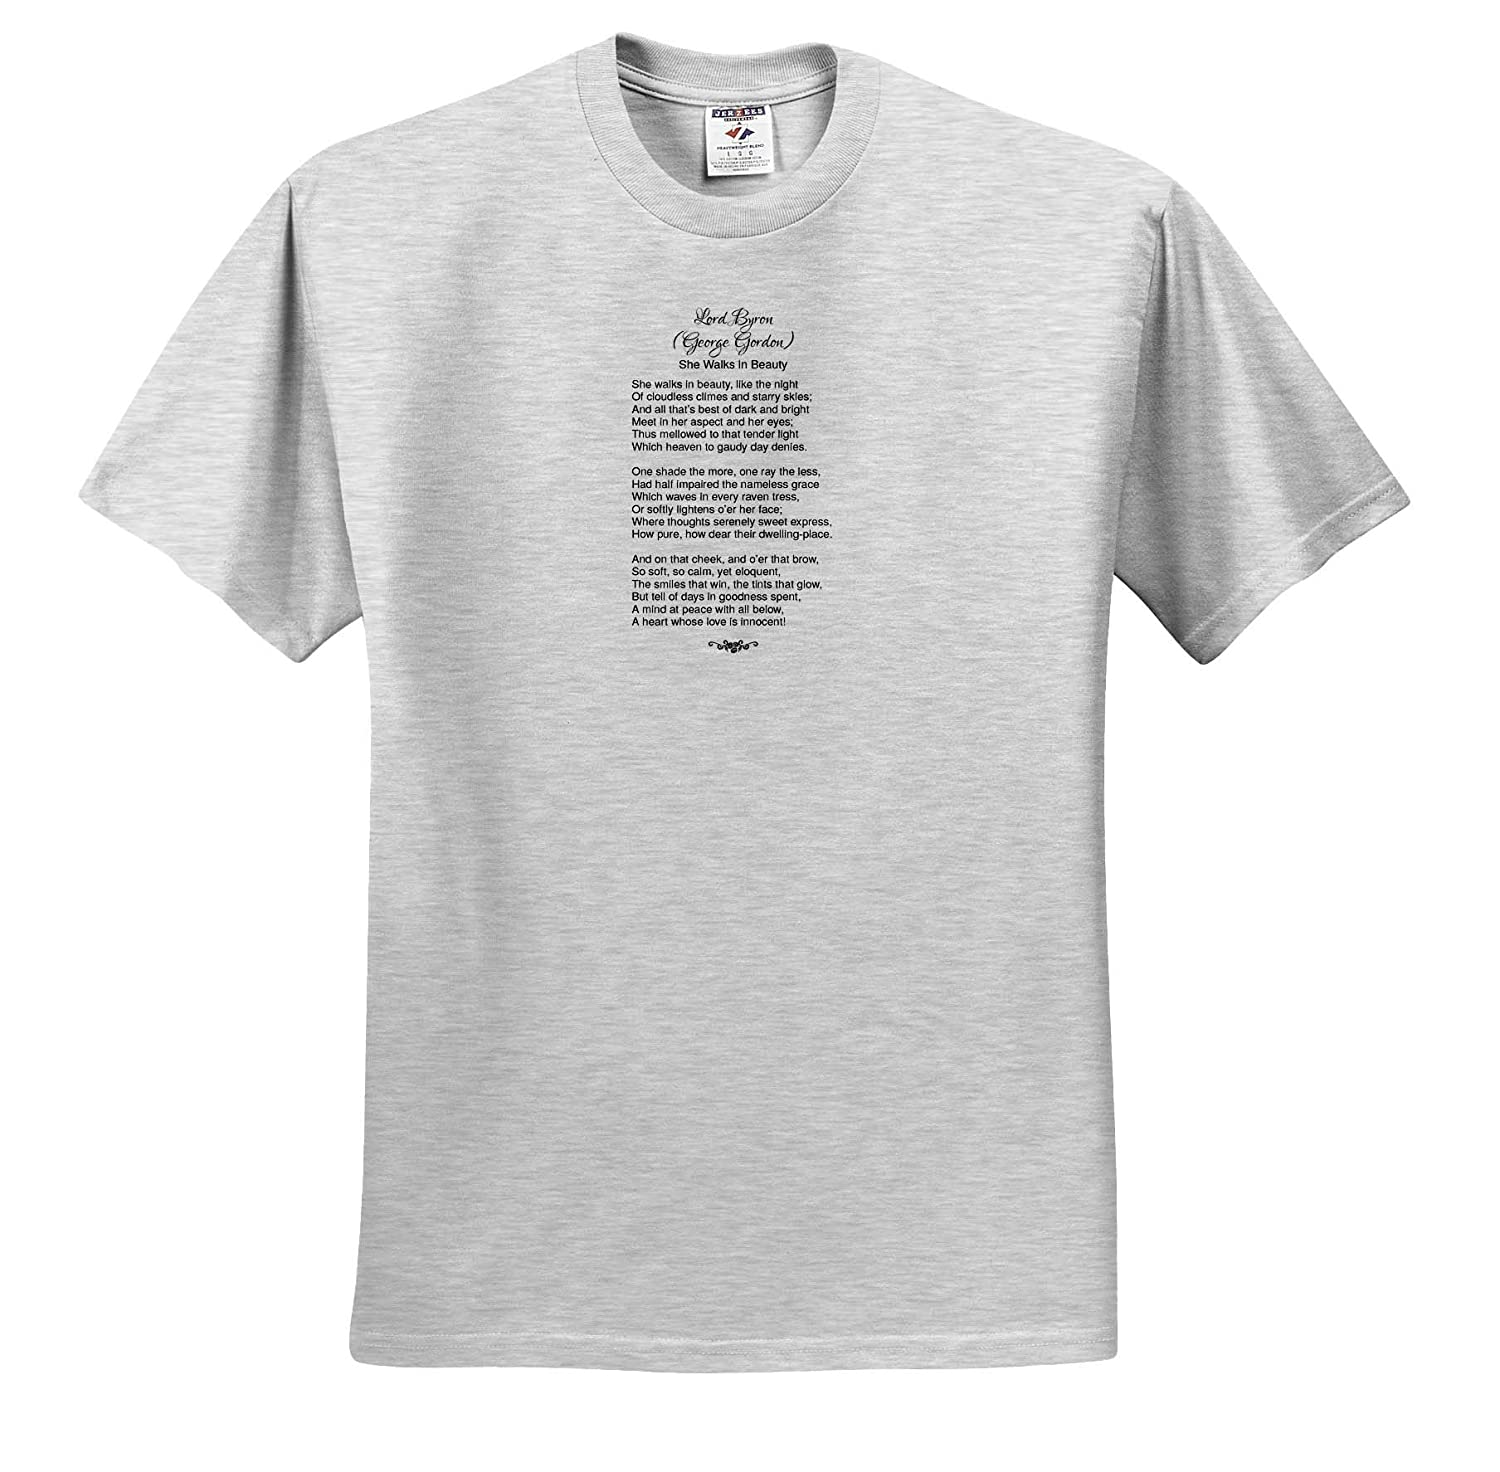 3dRose Alexis Design T-Shirts Poetry Lord Byron George Gordon She Walks in Beauty Like The Night